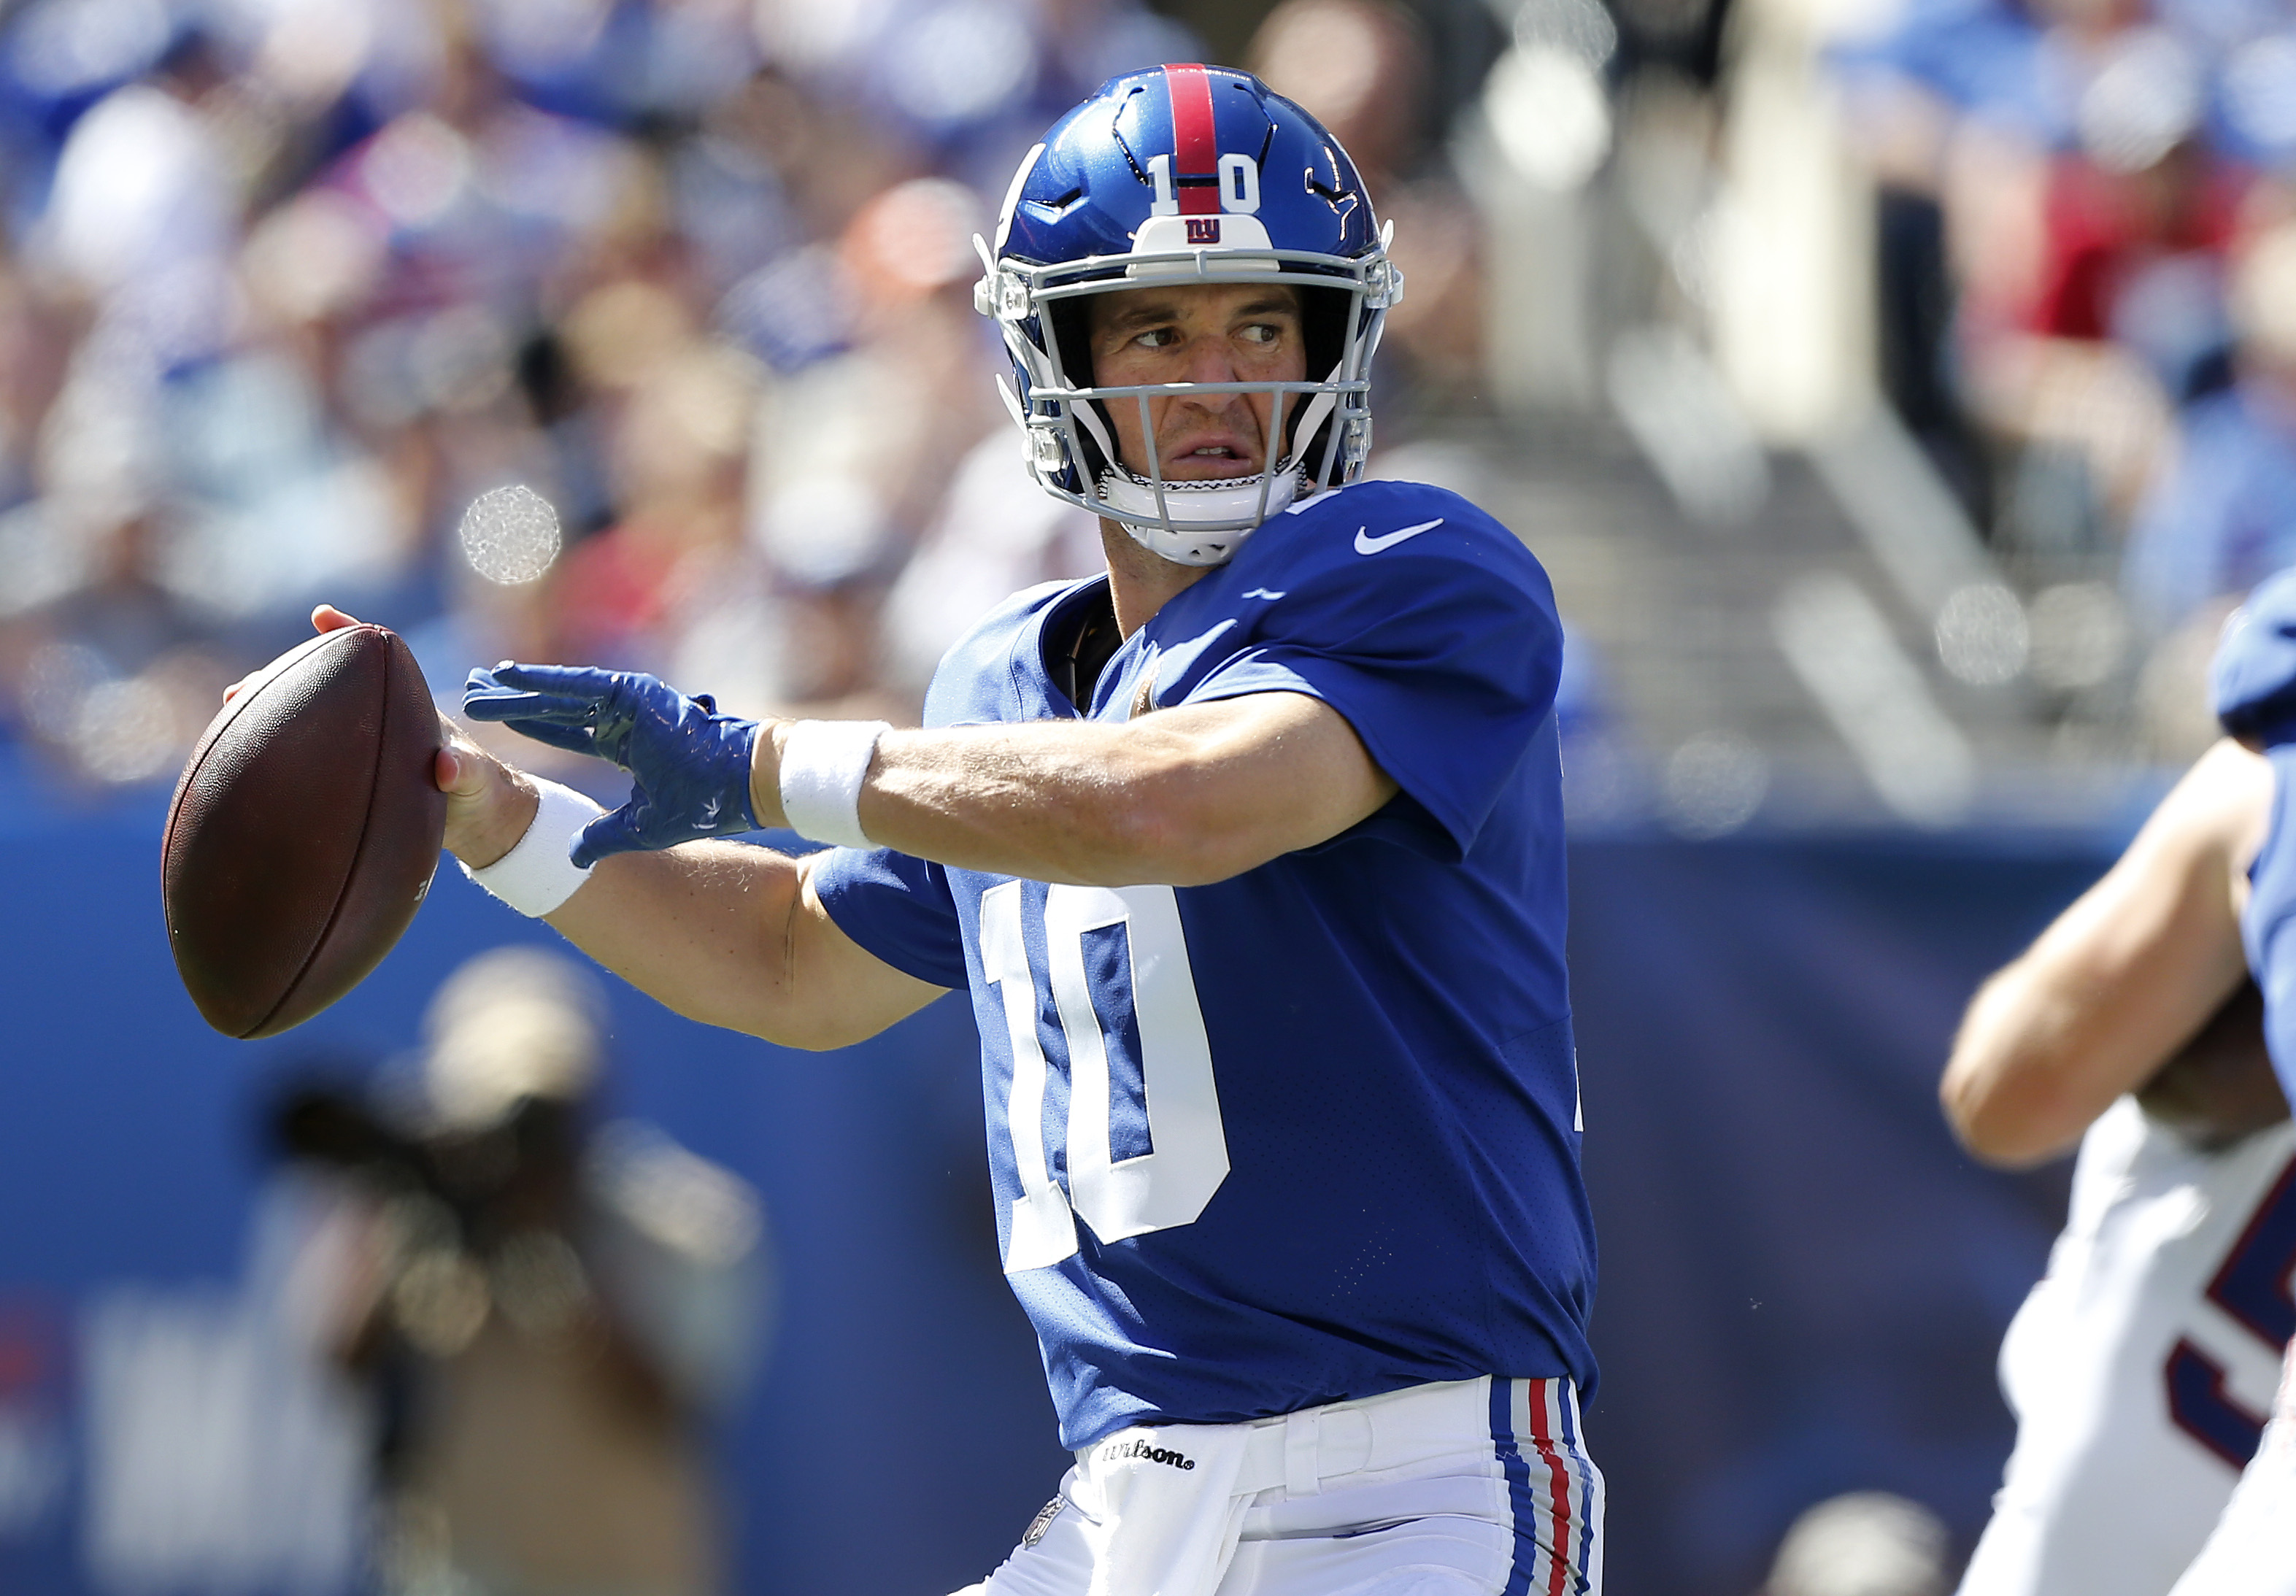 Will Eli Manning still have value as an NFL starting quarterback in 2020? A debate